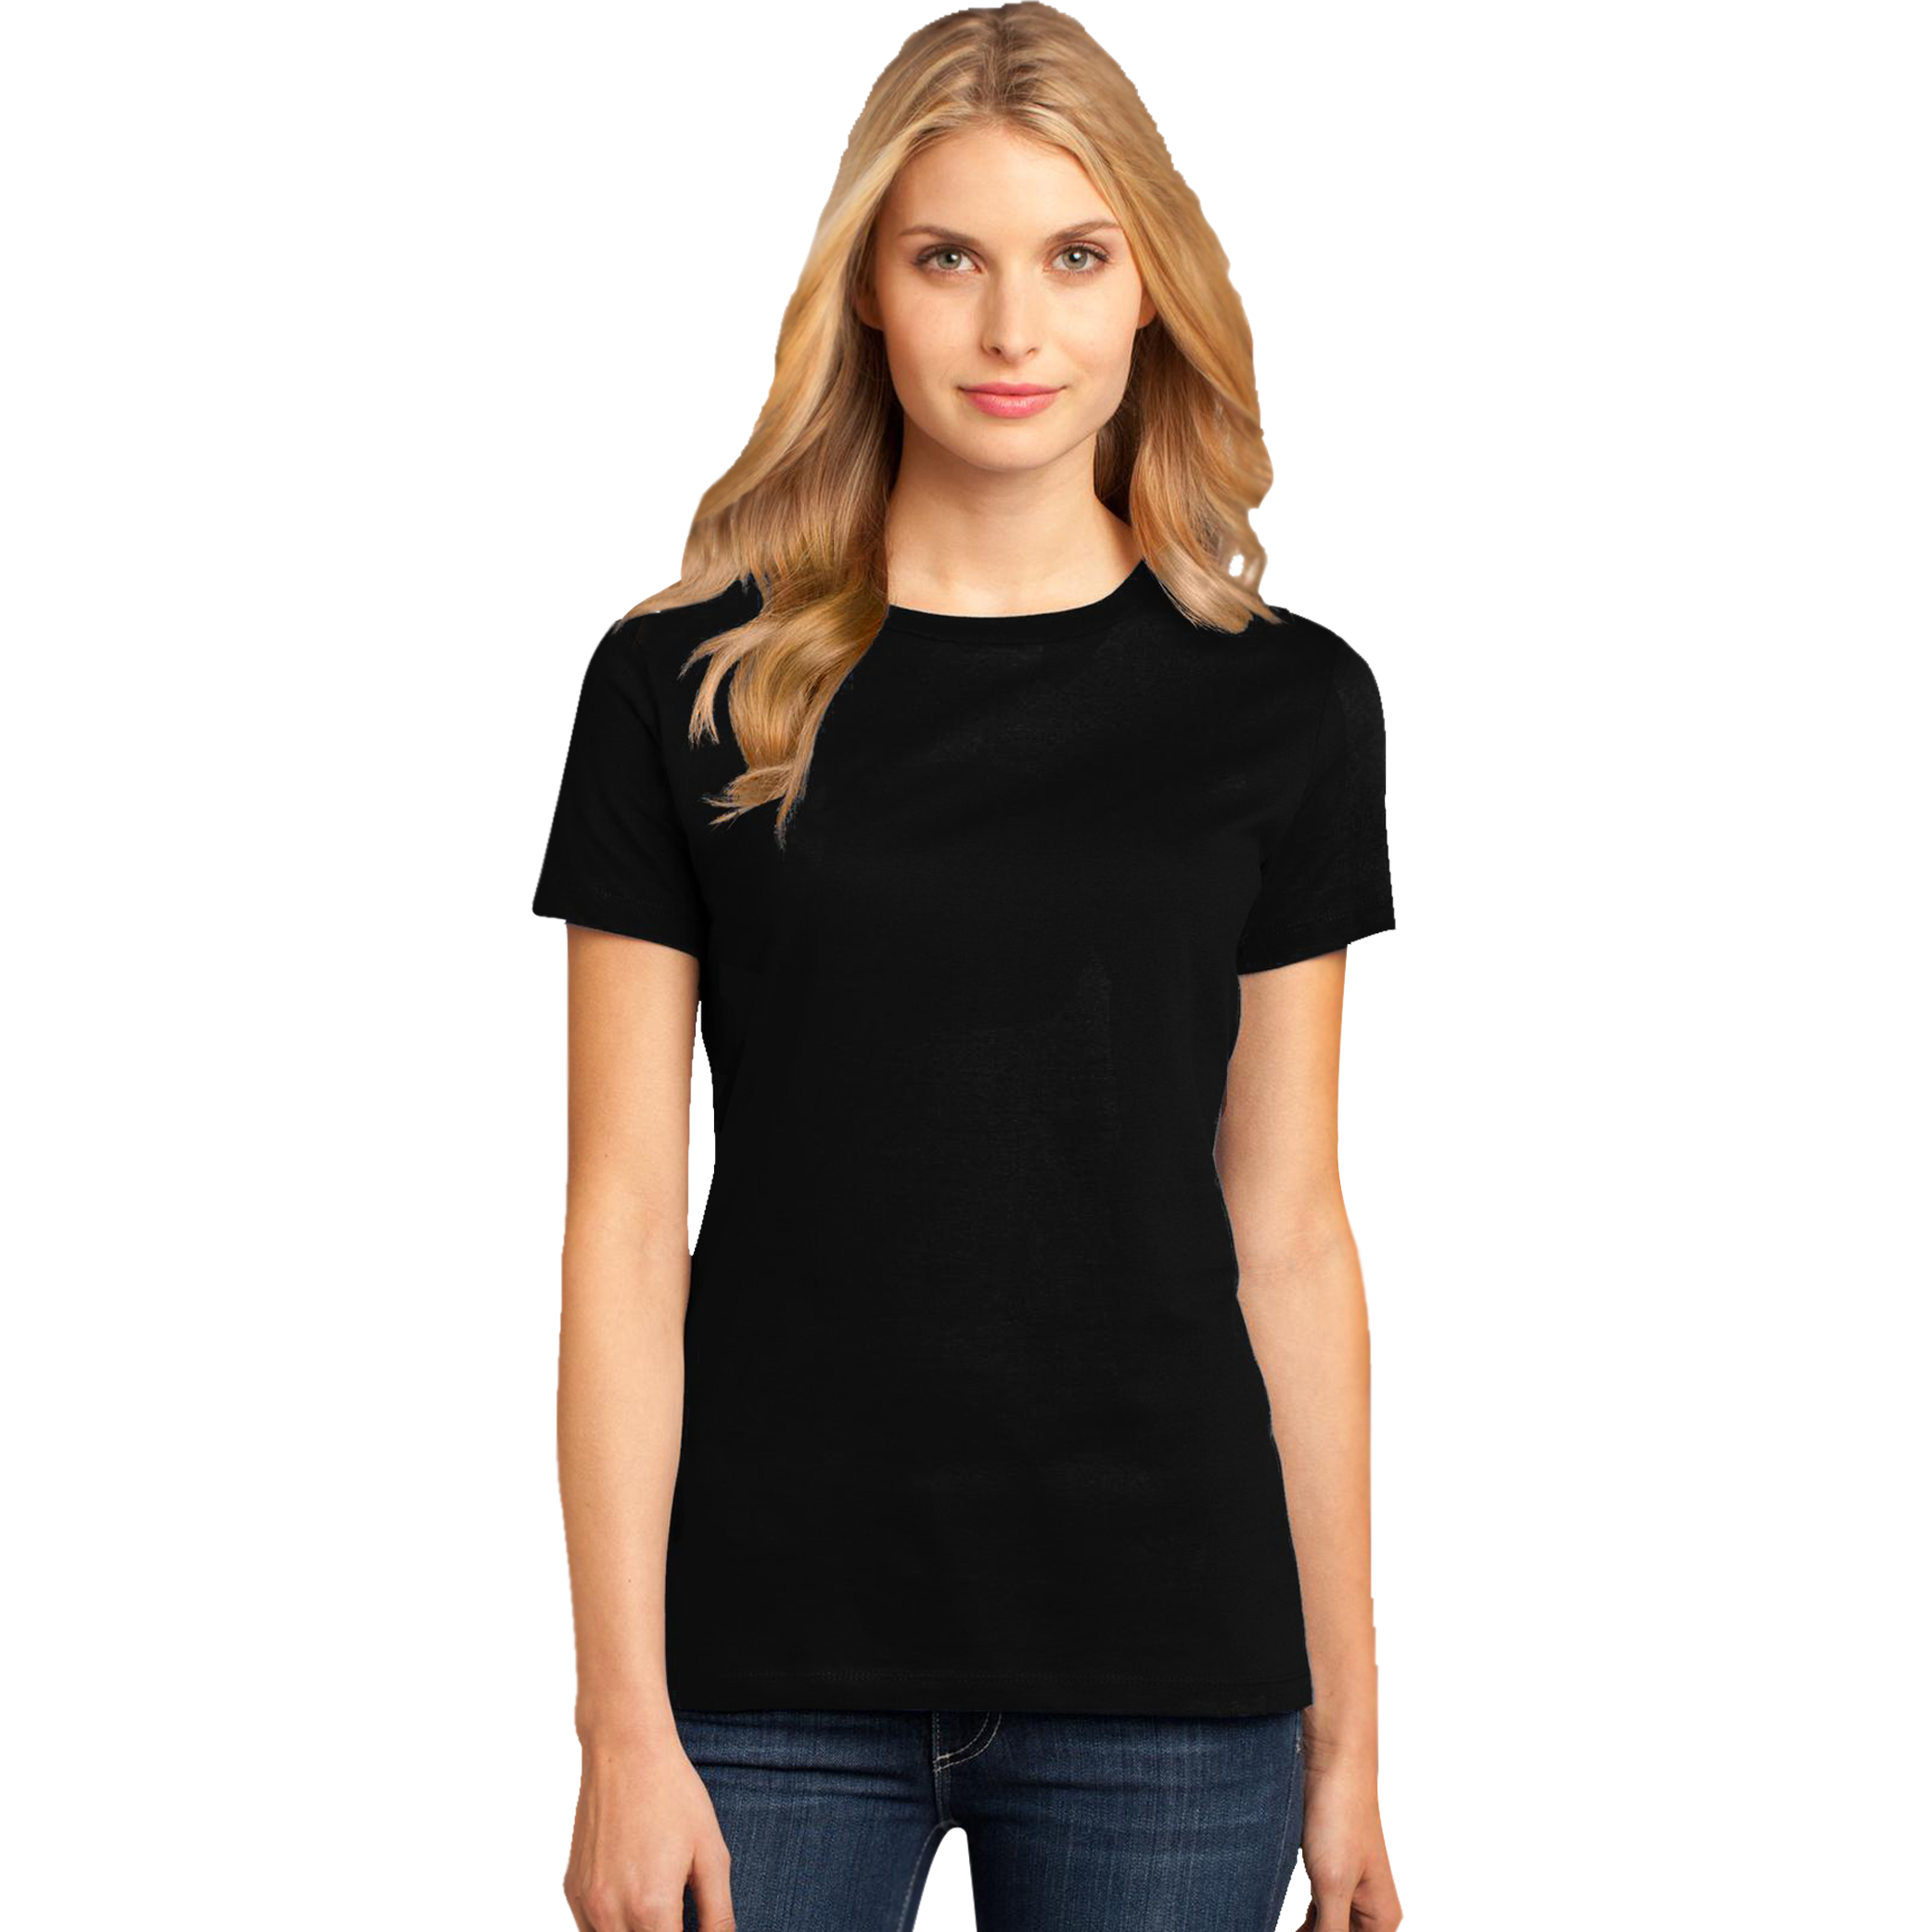 495c540bd Group Women's R-Neck T-shirts | T-shirt Loot – Customized T-shirts ...